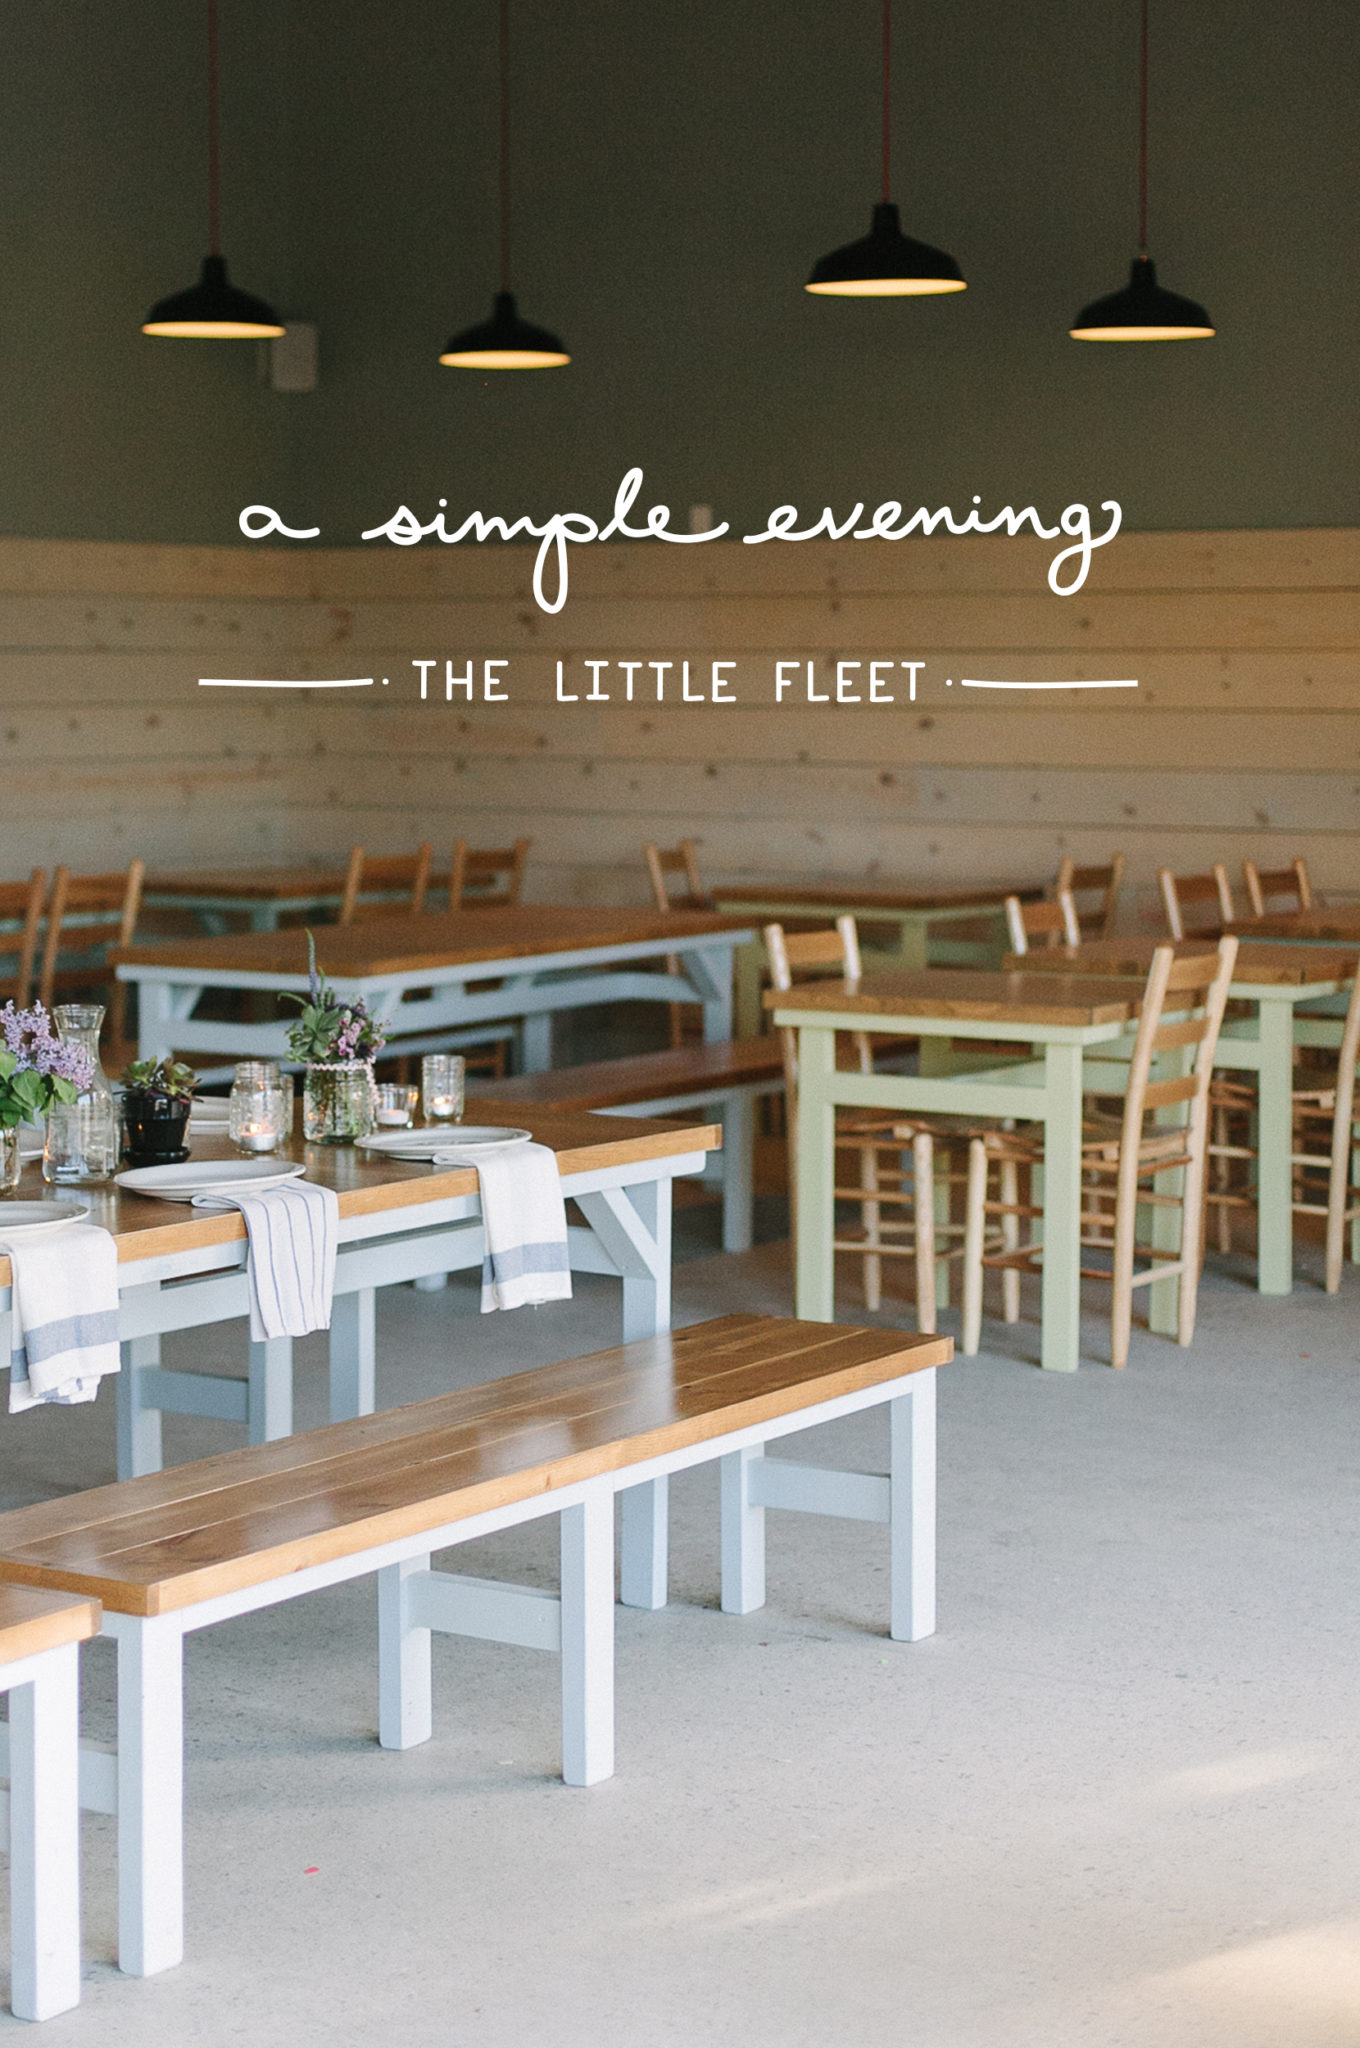 Simple Evening: The Little Fleet  |  The Fresh Exchange